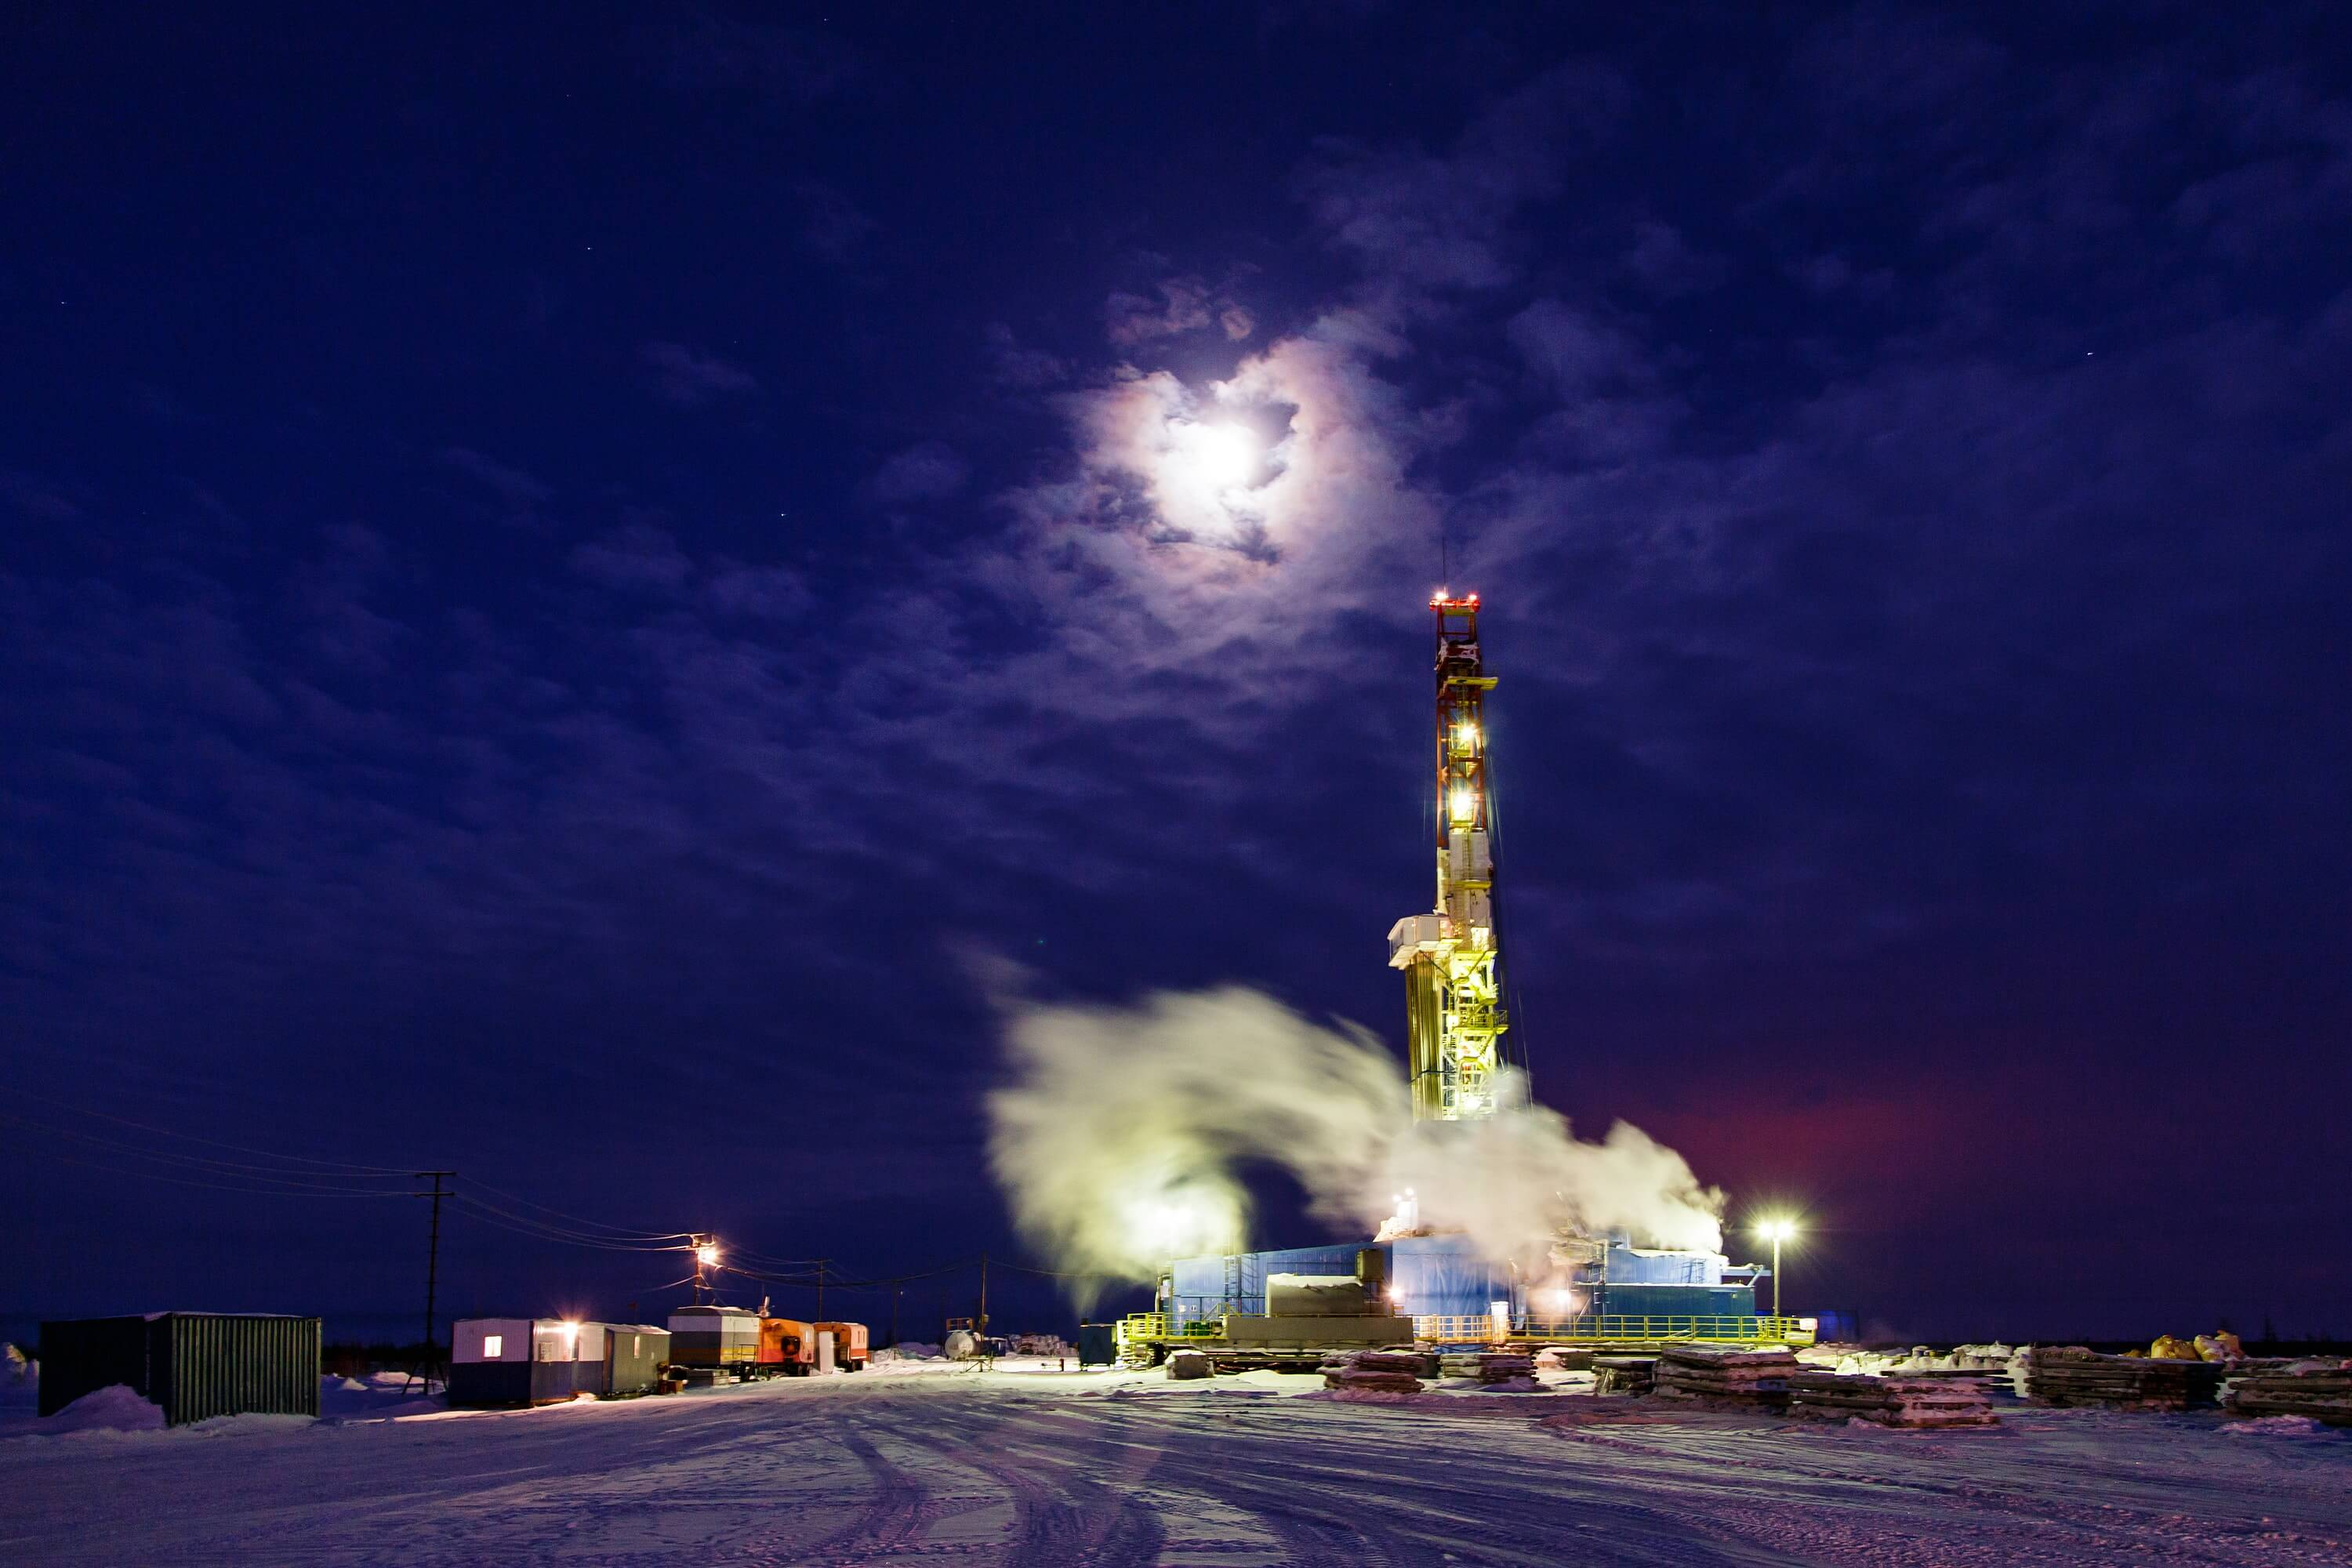 IoT in oil and gas